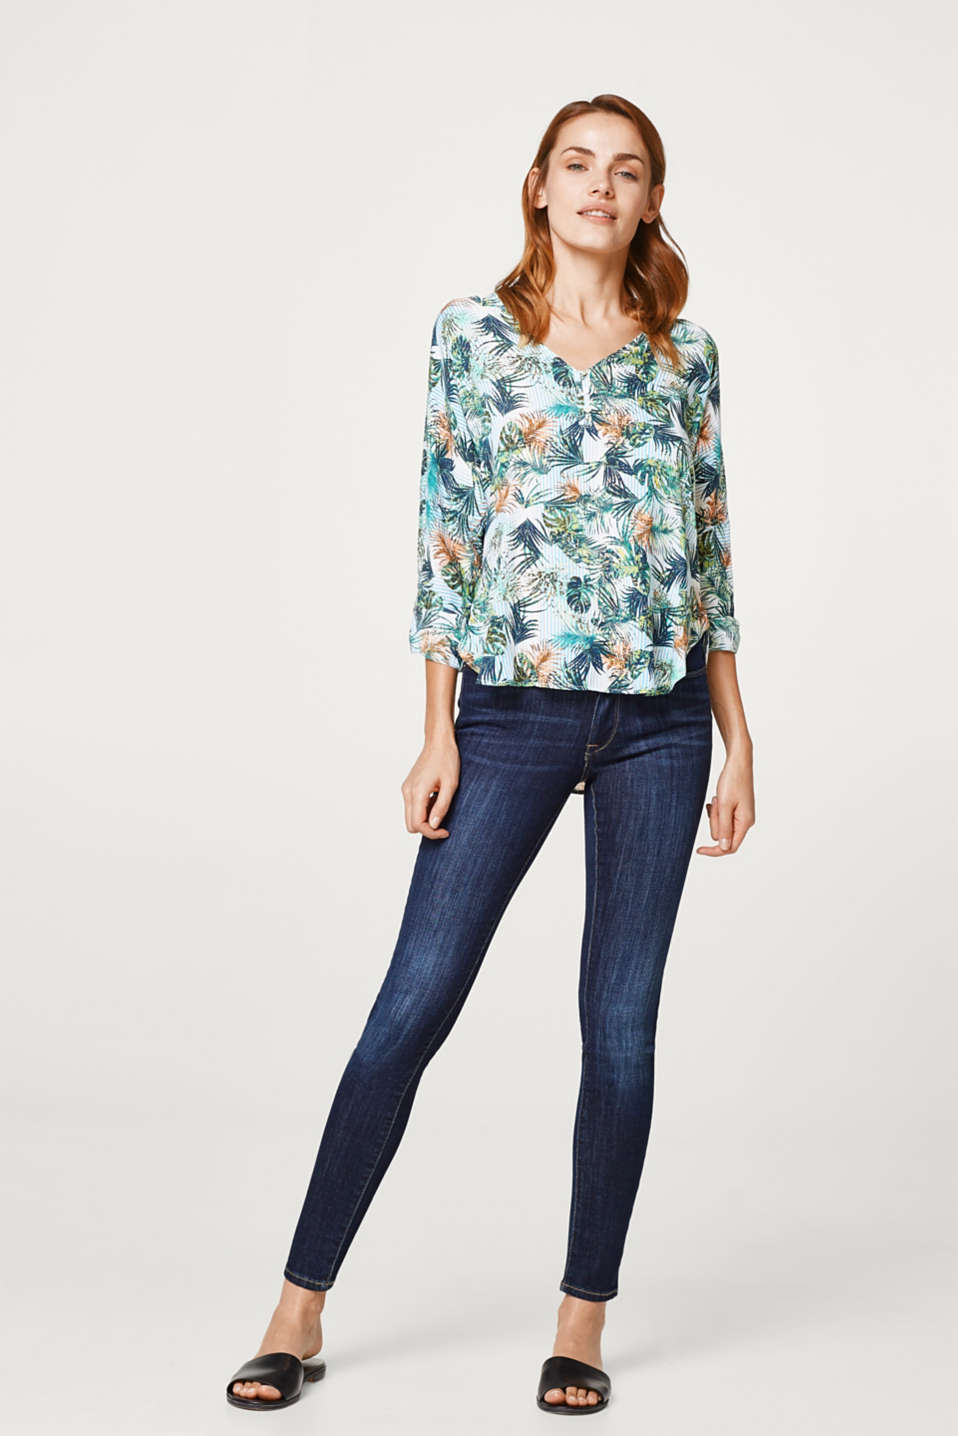 Lightweight turn-up blouse with a parrot print